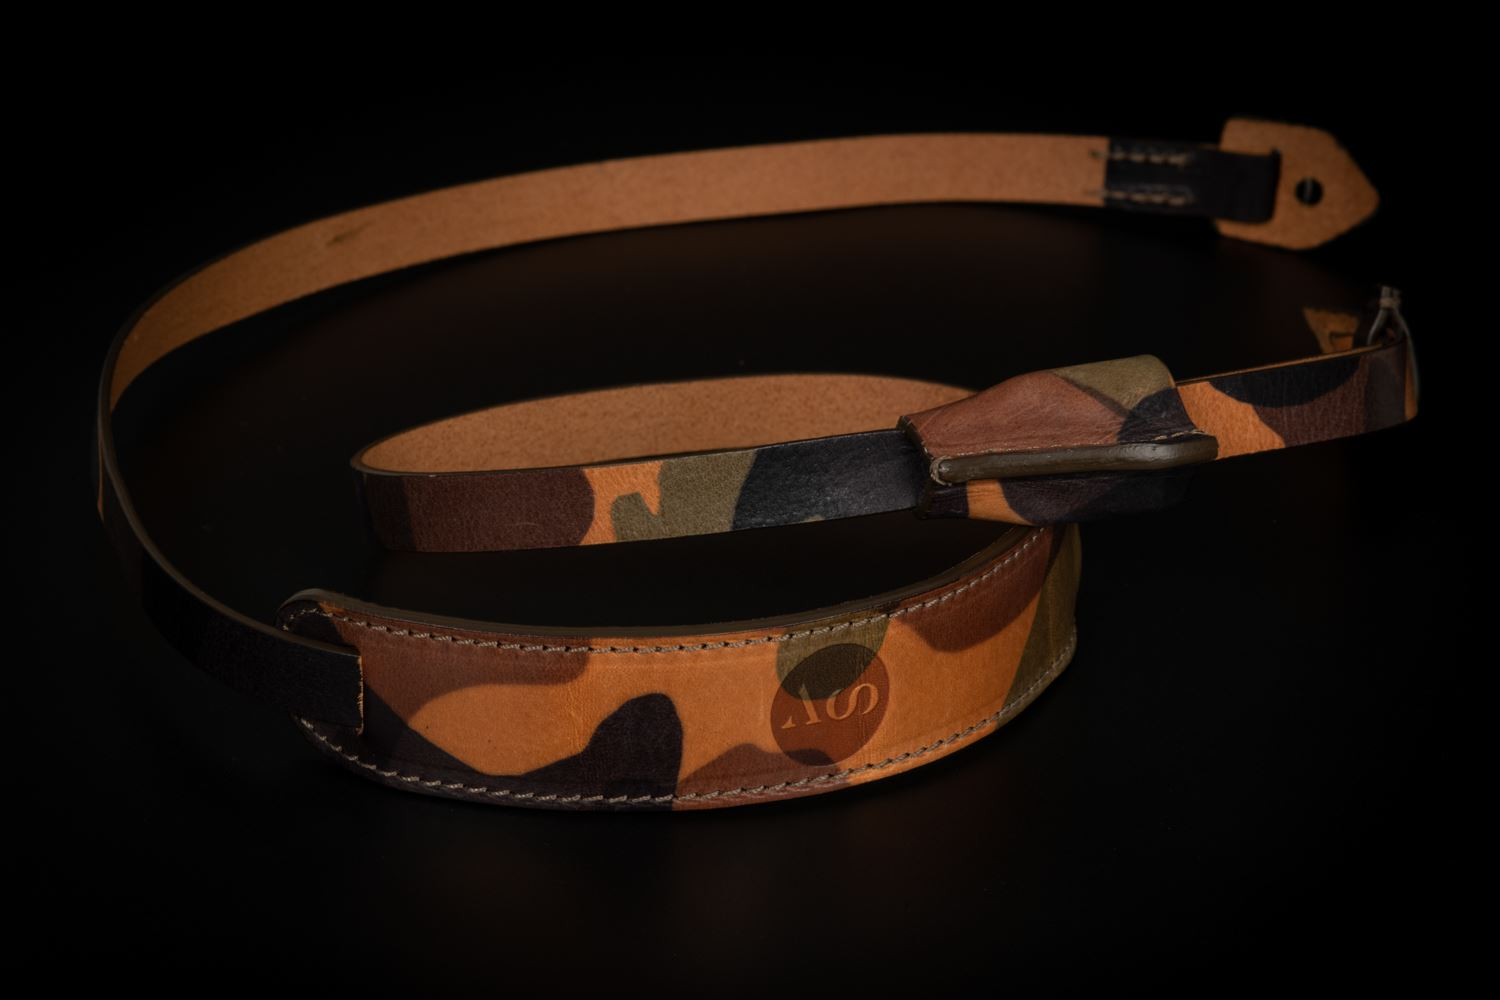 Picture of Angelo Pelle Neck Strap, Padded - Camouflage Pad and Belt